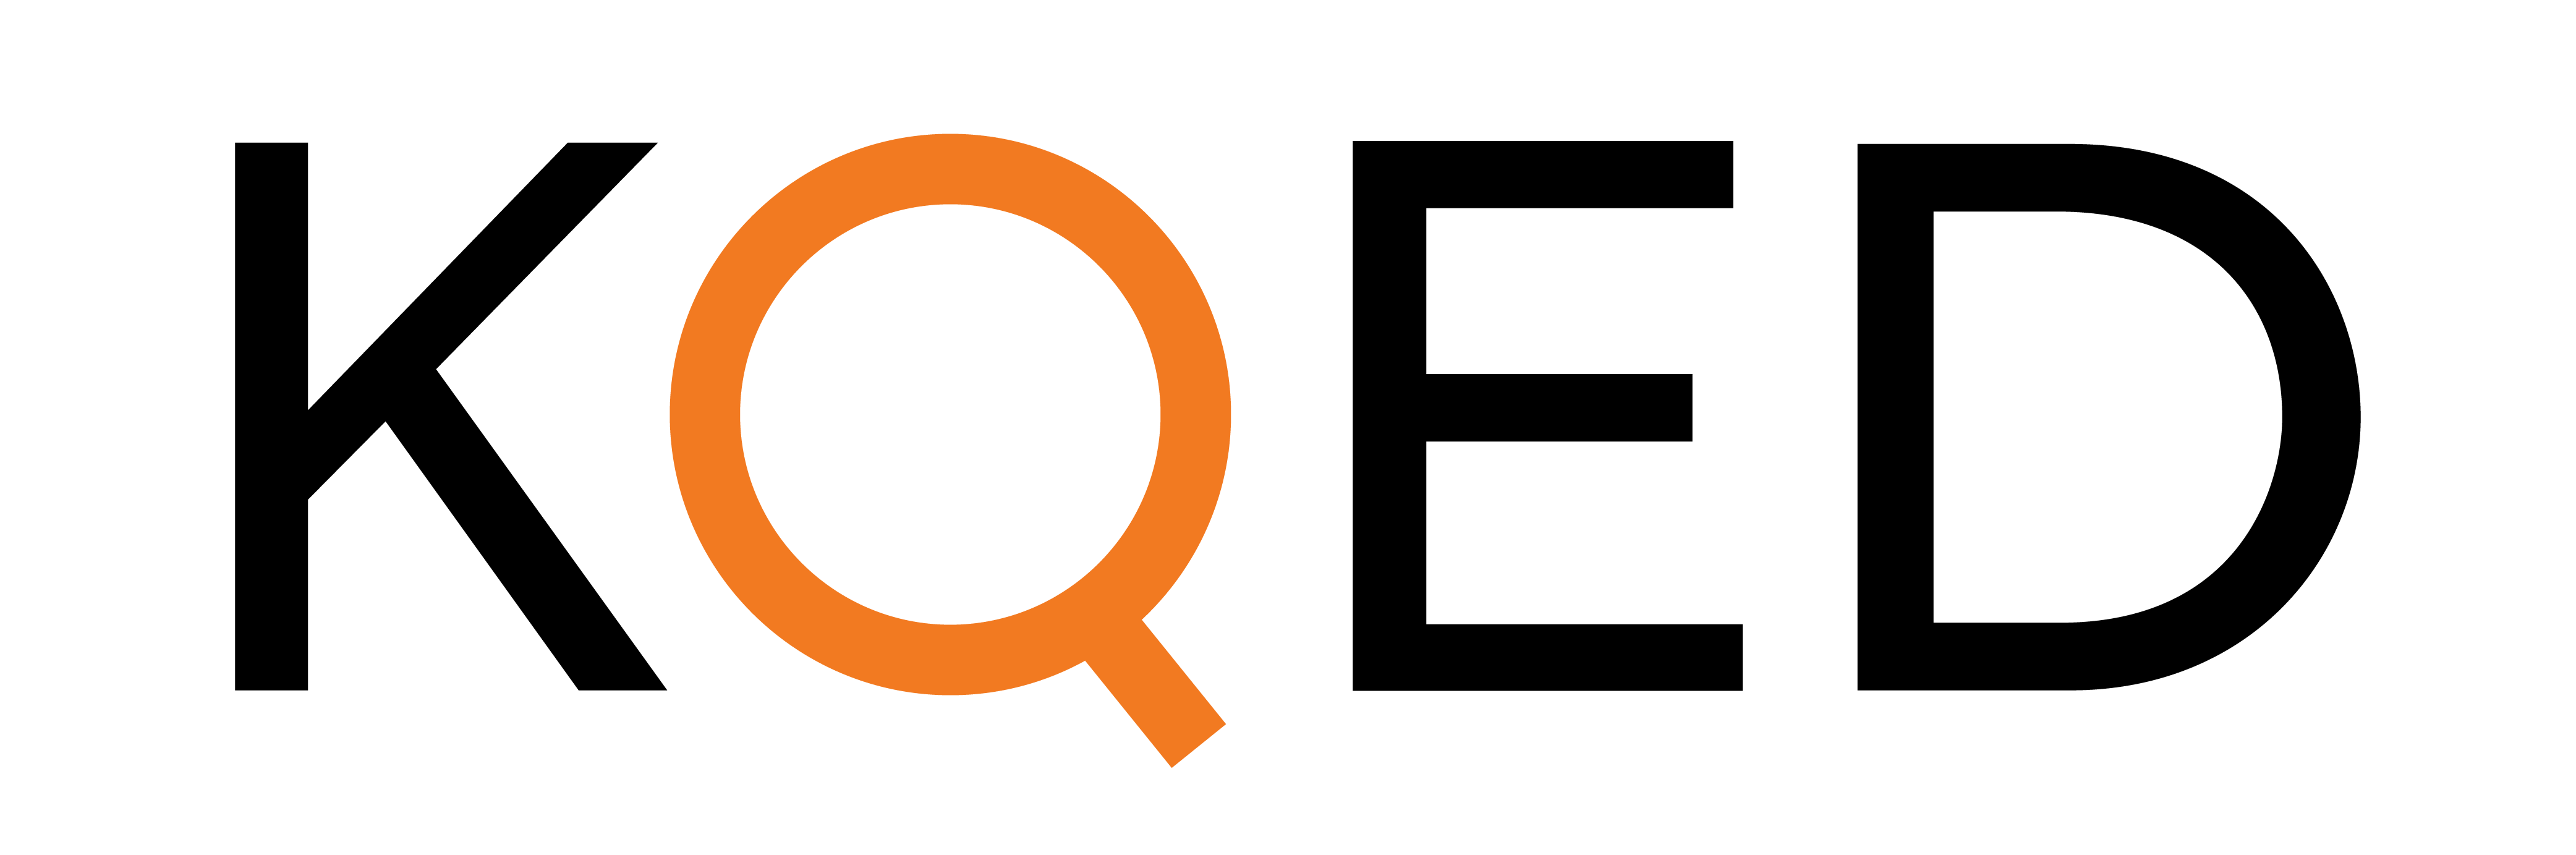 KQED_Logo_with_Orange_Q.png